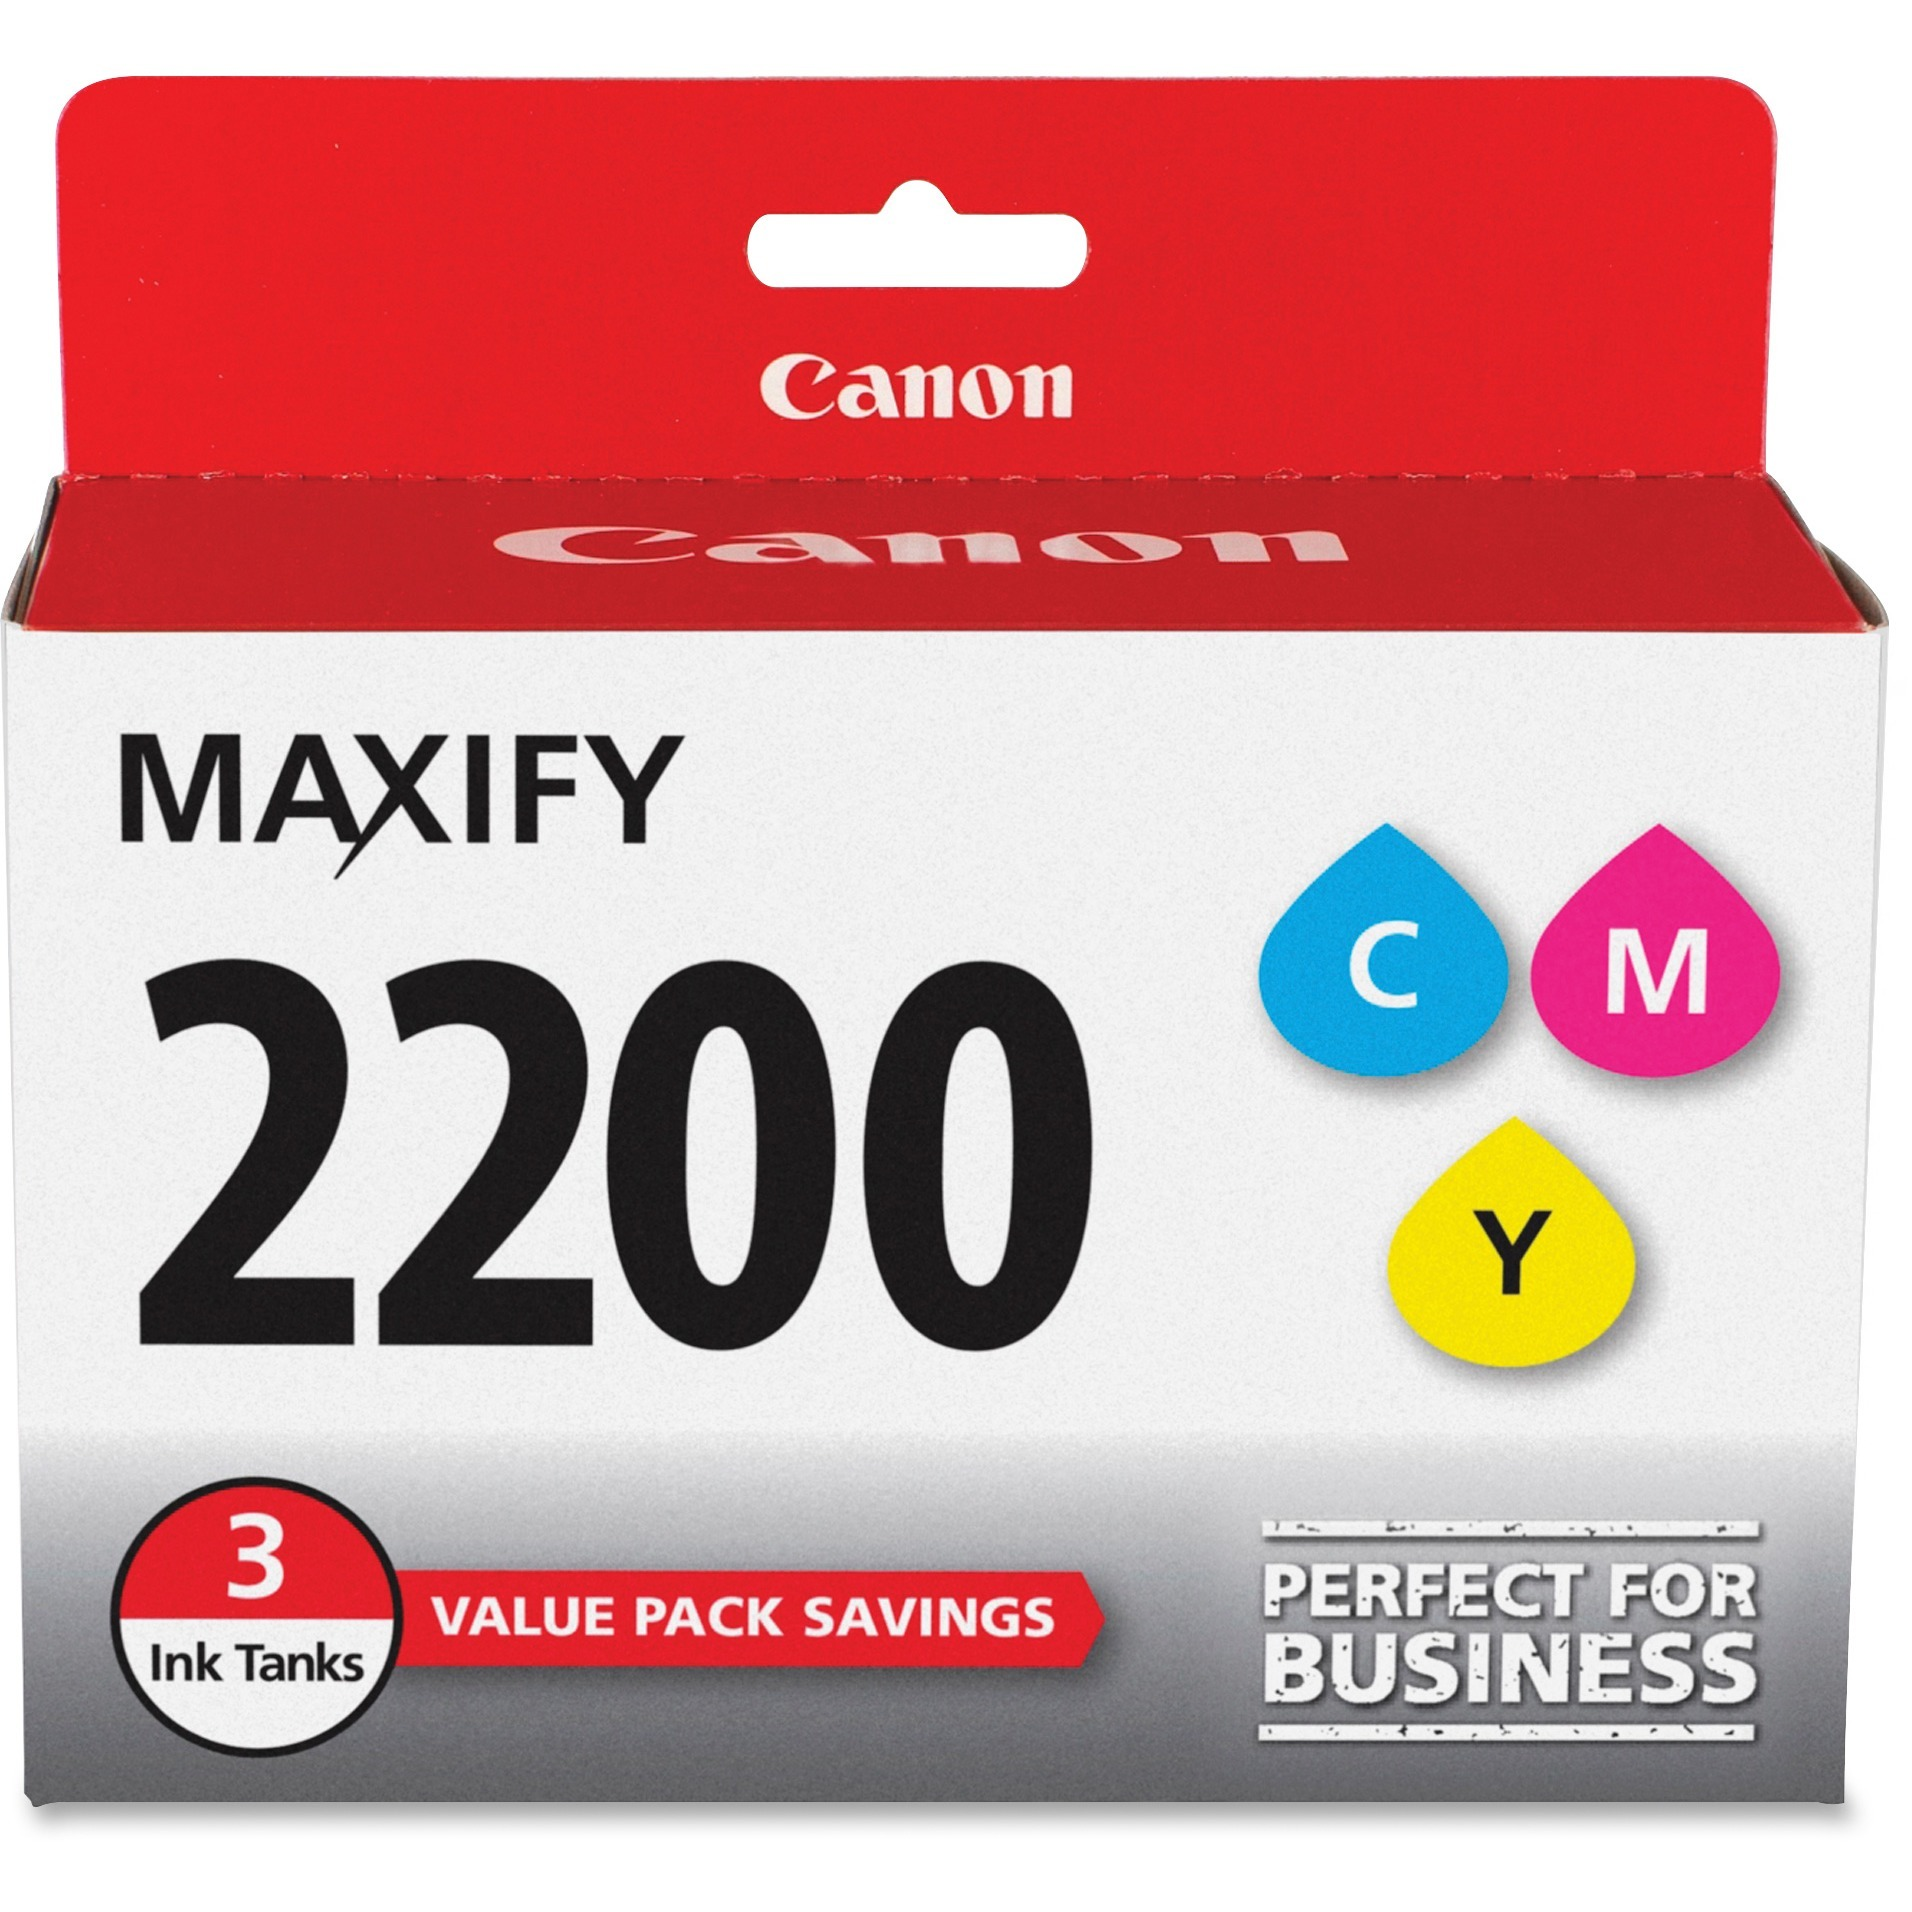 Canon, CNMPGI2200CMY, PG-2200 MAXIFY Color Ink Tank, 3 / Pack